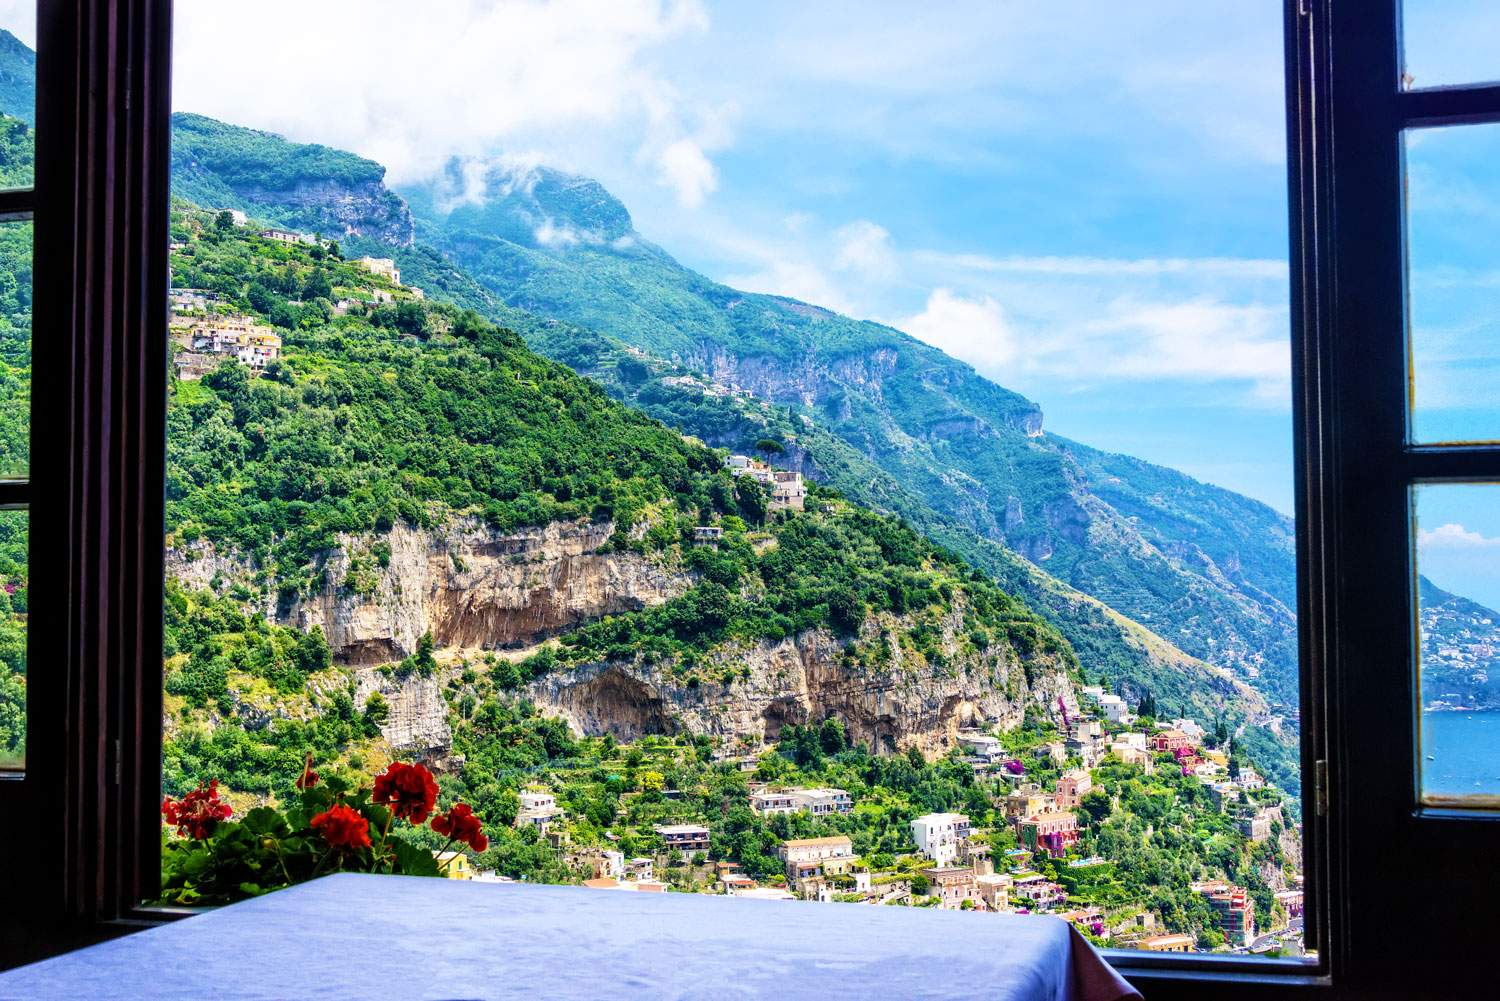 amalfi-coast-view-town-italy-travel